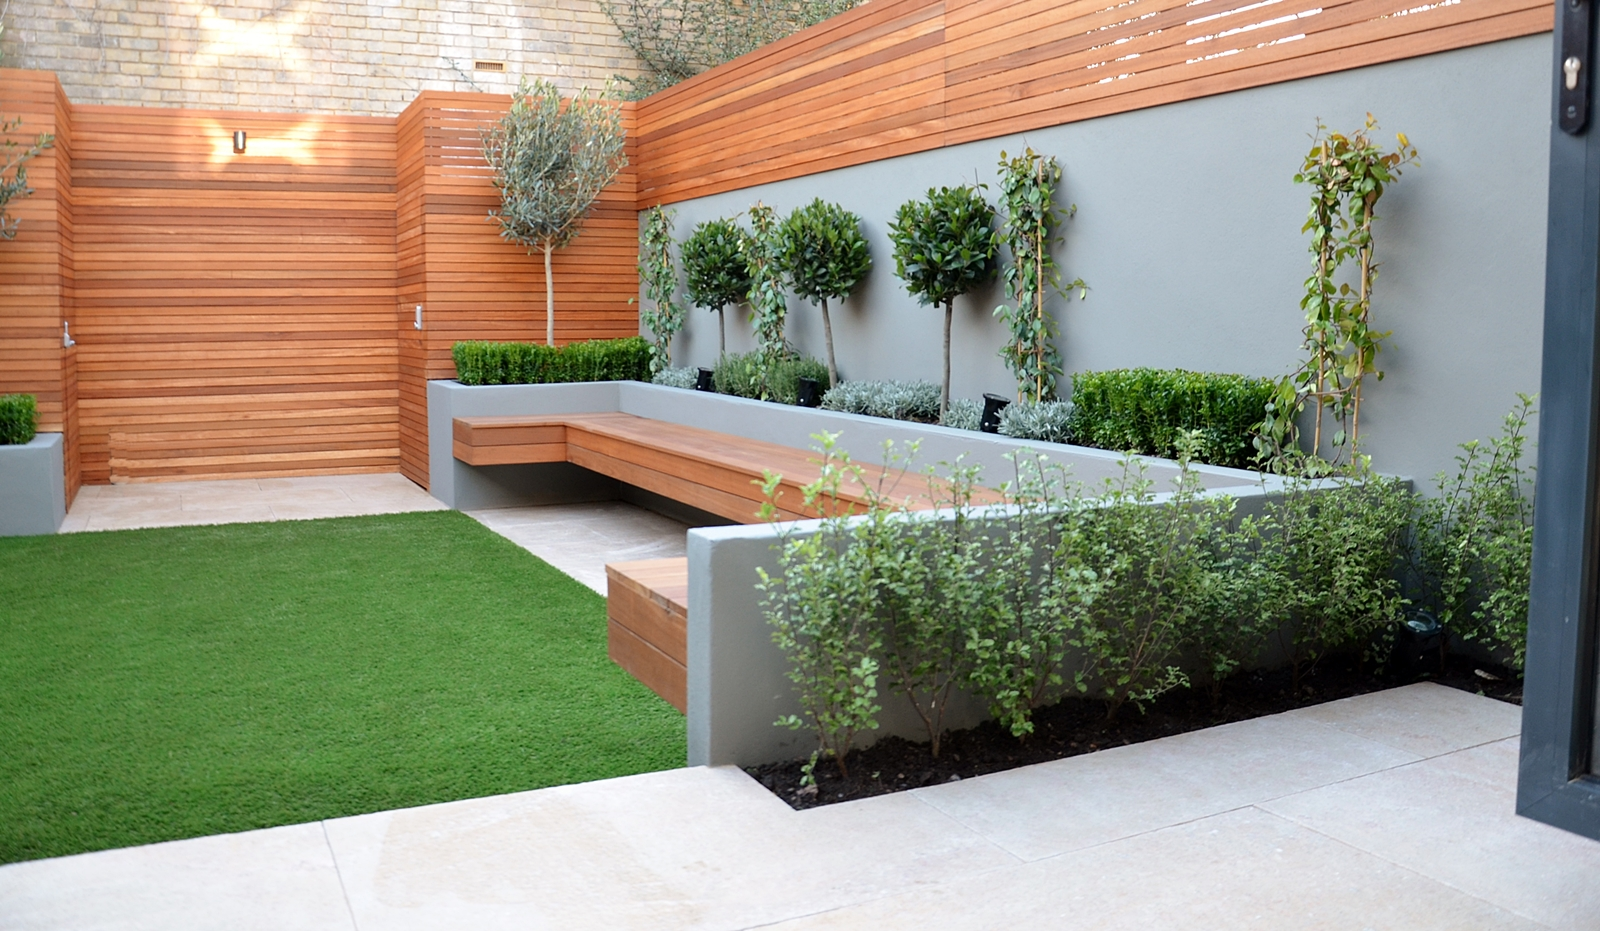 Clapham and london garden design 2015 for Modern house design with garden